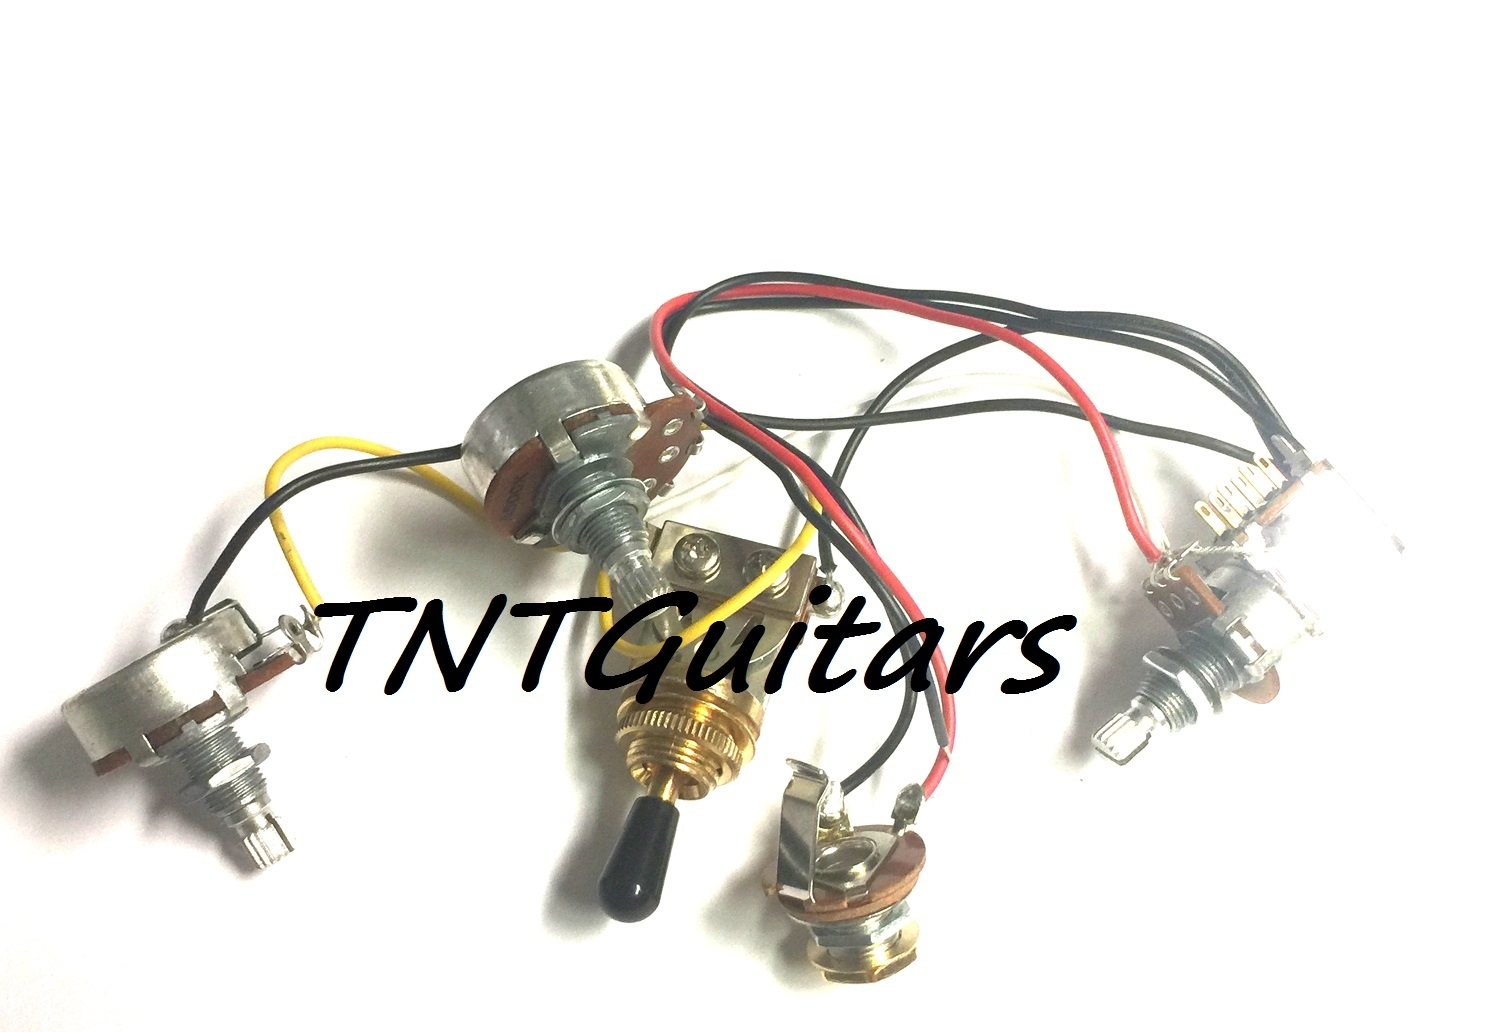 1v2t Prewired Harness 2 Pickup Push Pull Coil Cut With 3 Way Toggle Pushpull Pot For Tone Control Also Capacitors Are Not Typical Switch